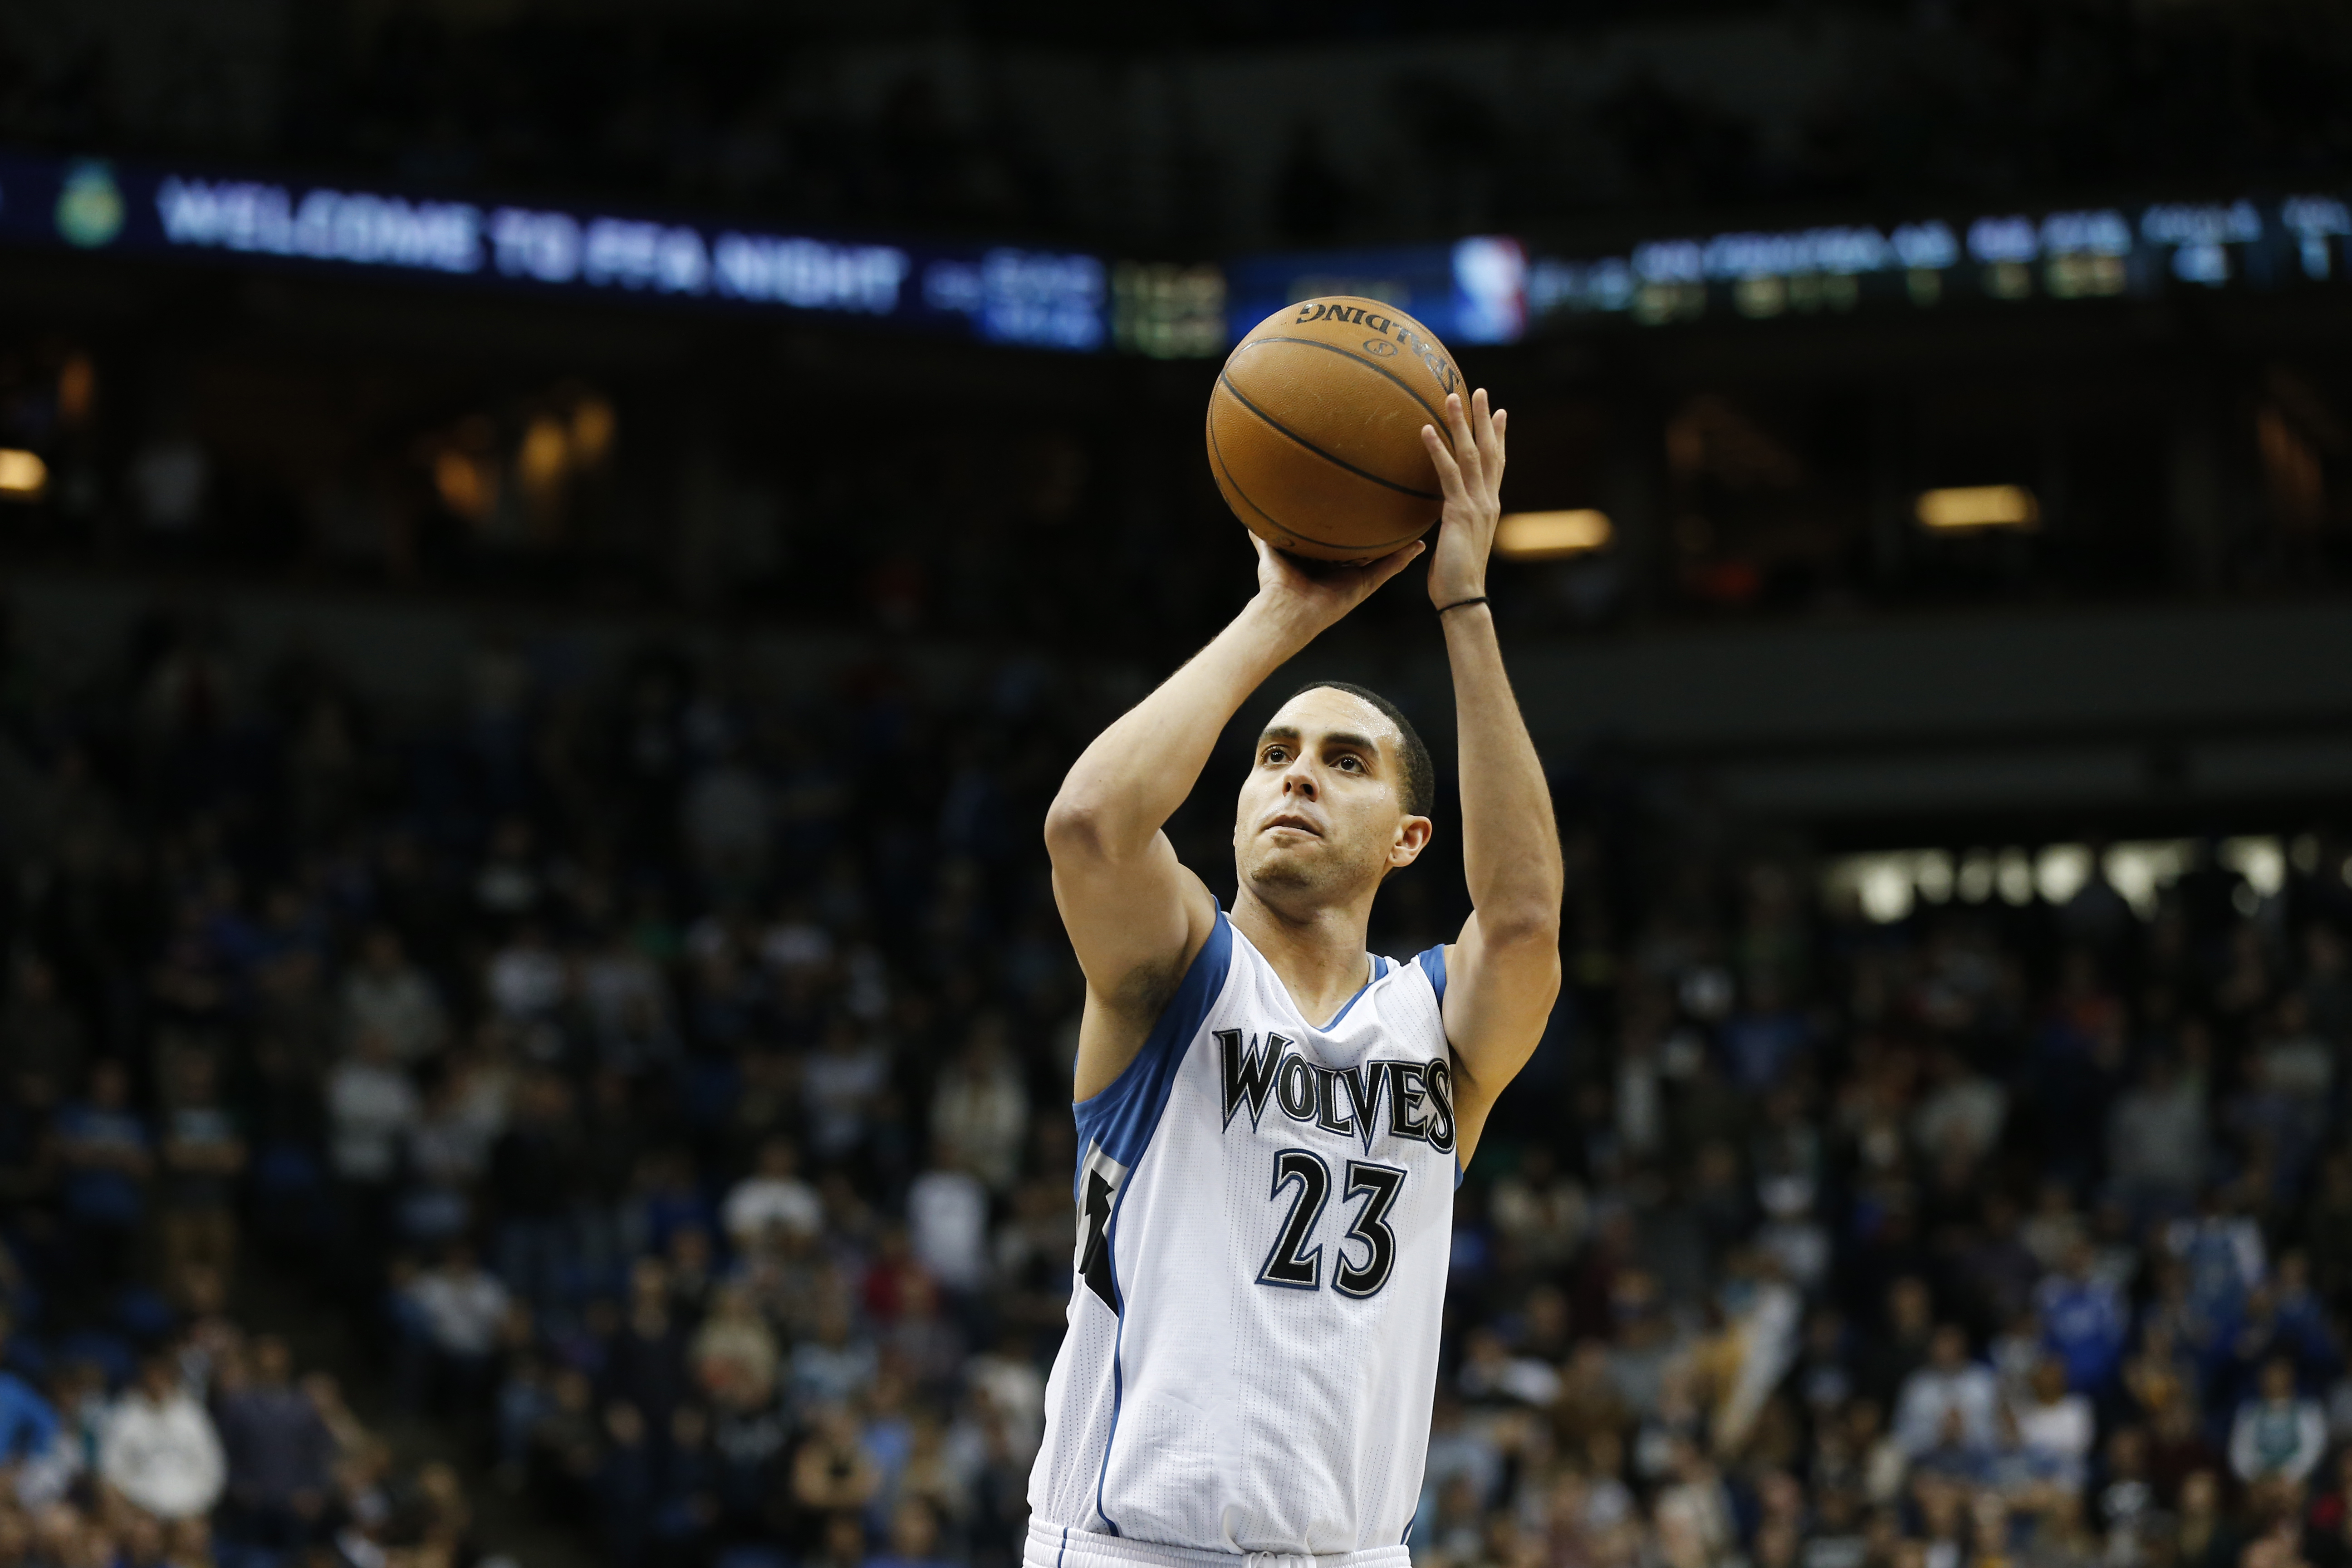 MINNEAPOLIS, MN - MARCH 7: Kevin Martin #23 of the Minnesota Timberwolves shoots against the Portland Trail Blazers during the game on March 7, 2015 at Target Center in Minneapolis, Minnesota. (Photo by Jordan Johnson/NBAE via Getty Images)